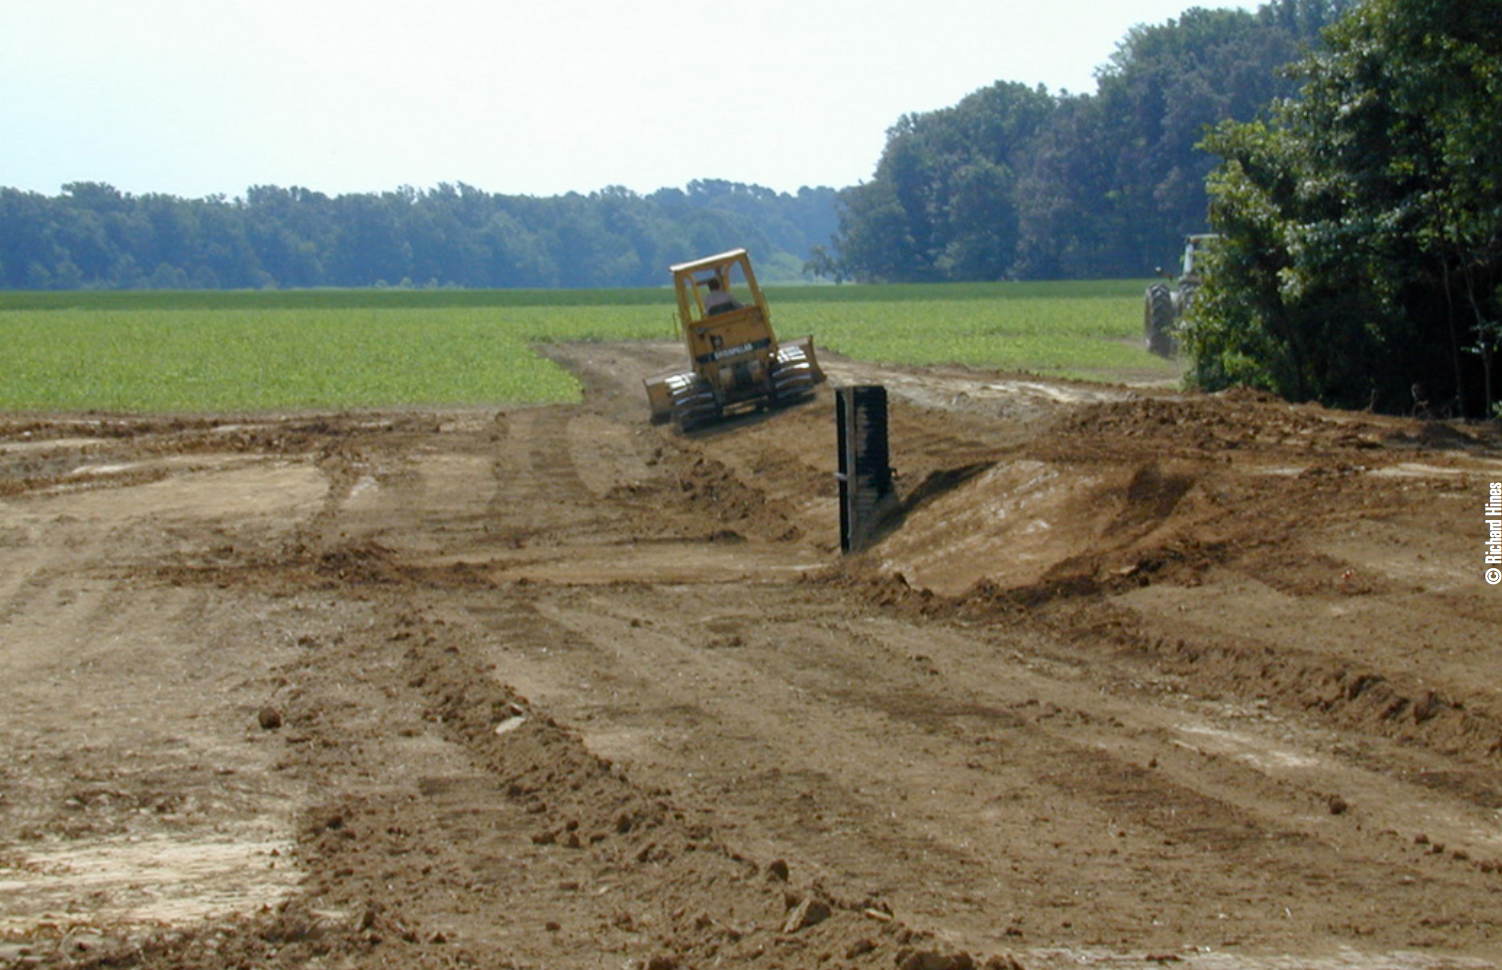 Bulldozer creating a levee for a waterfowl wetland